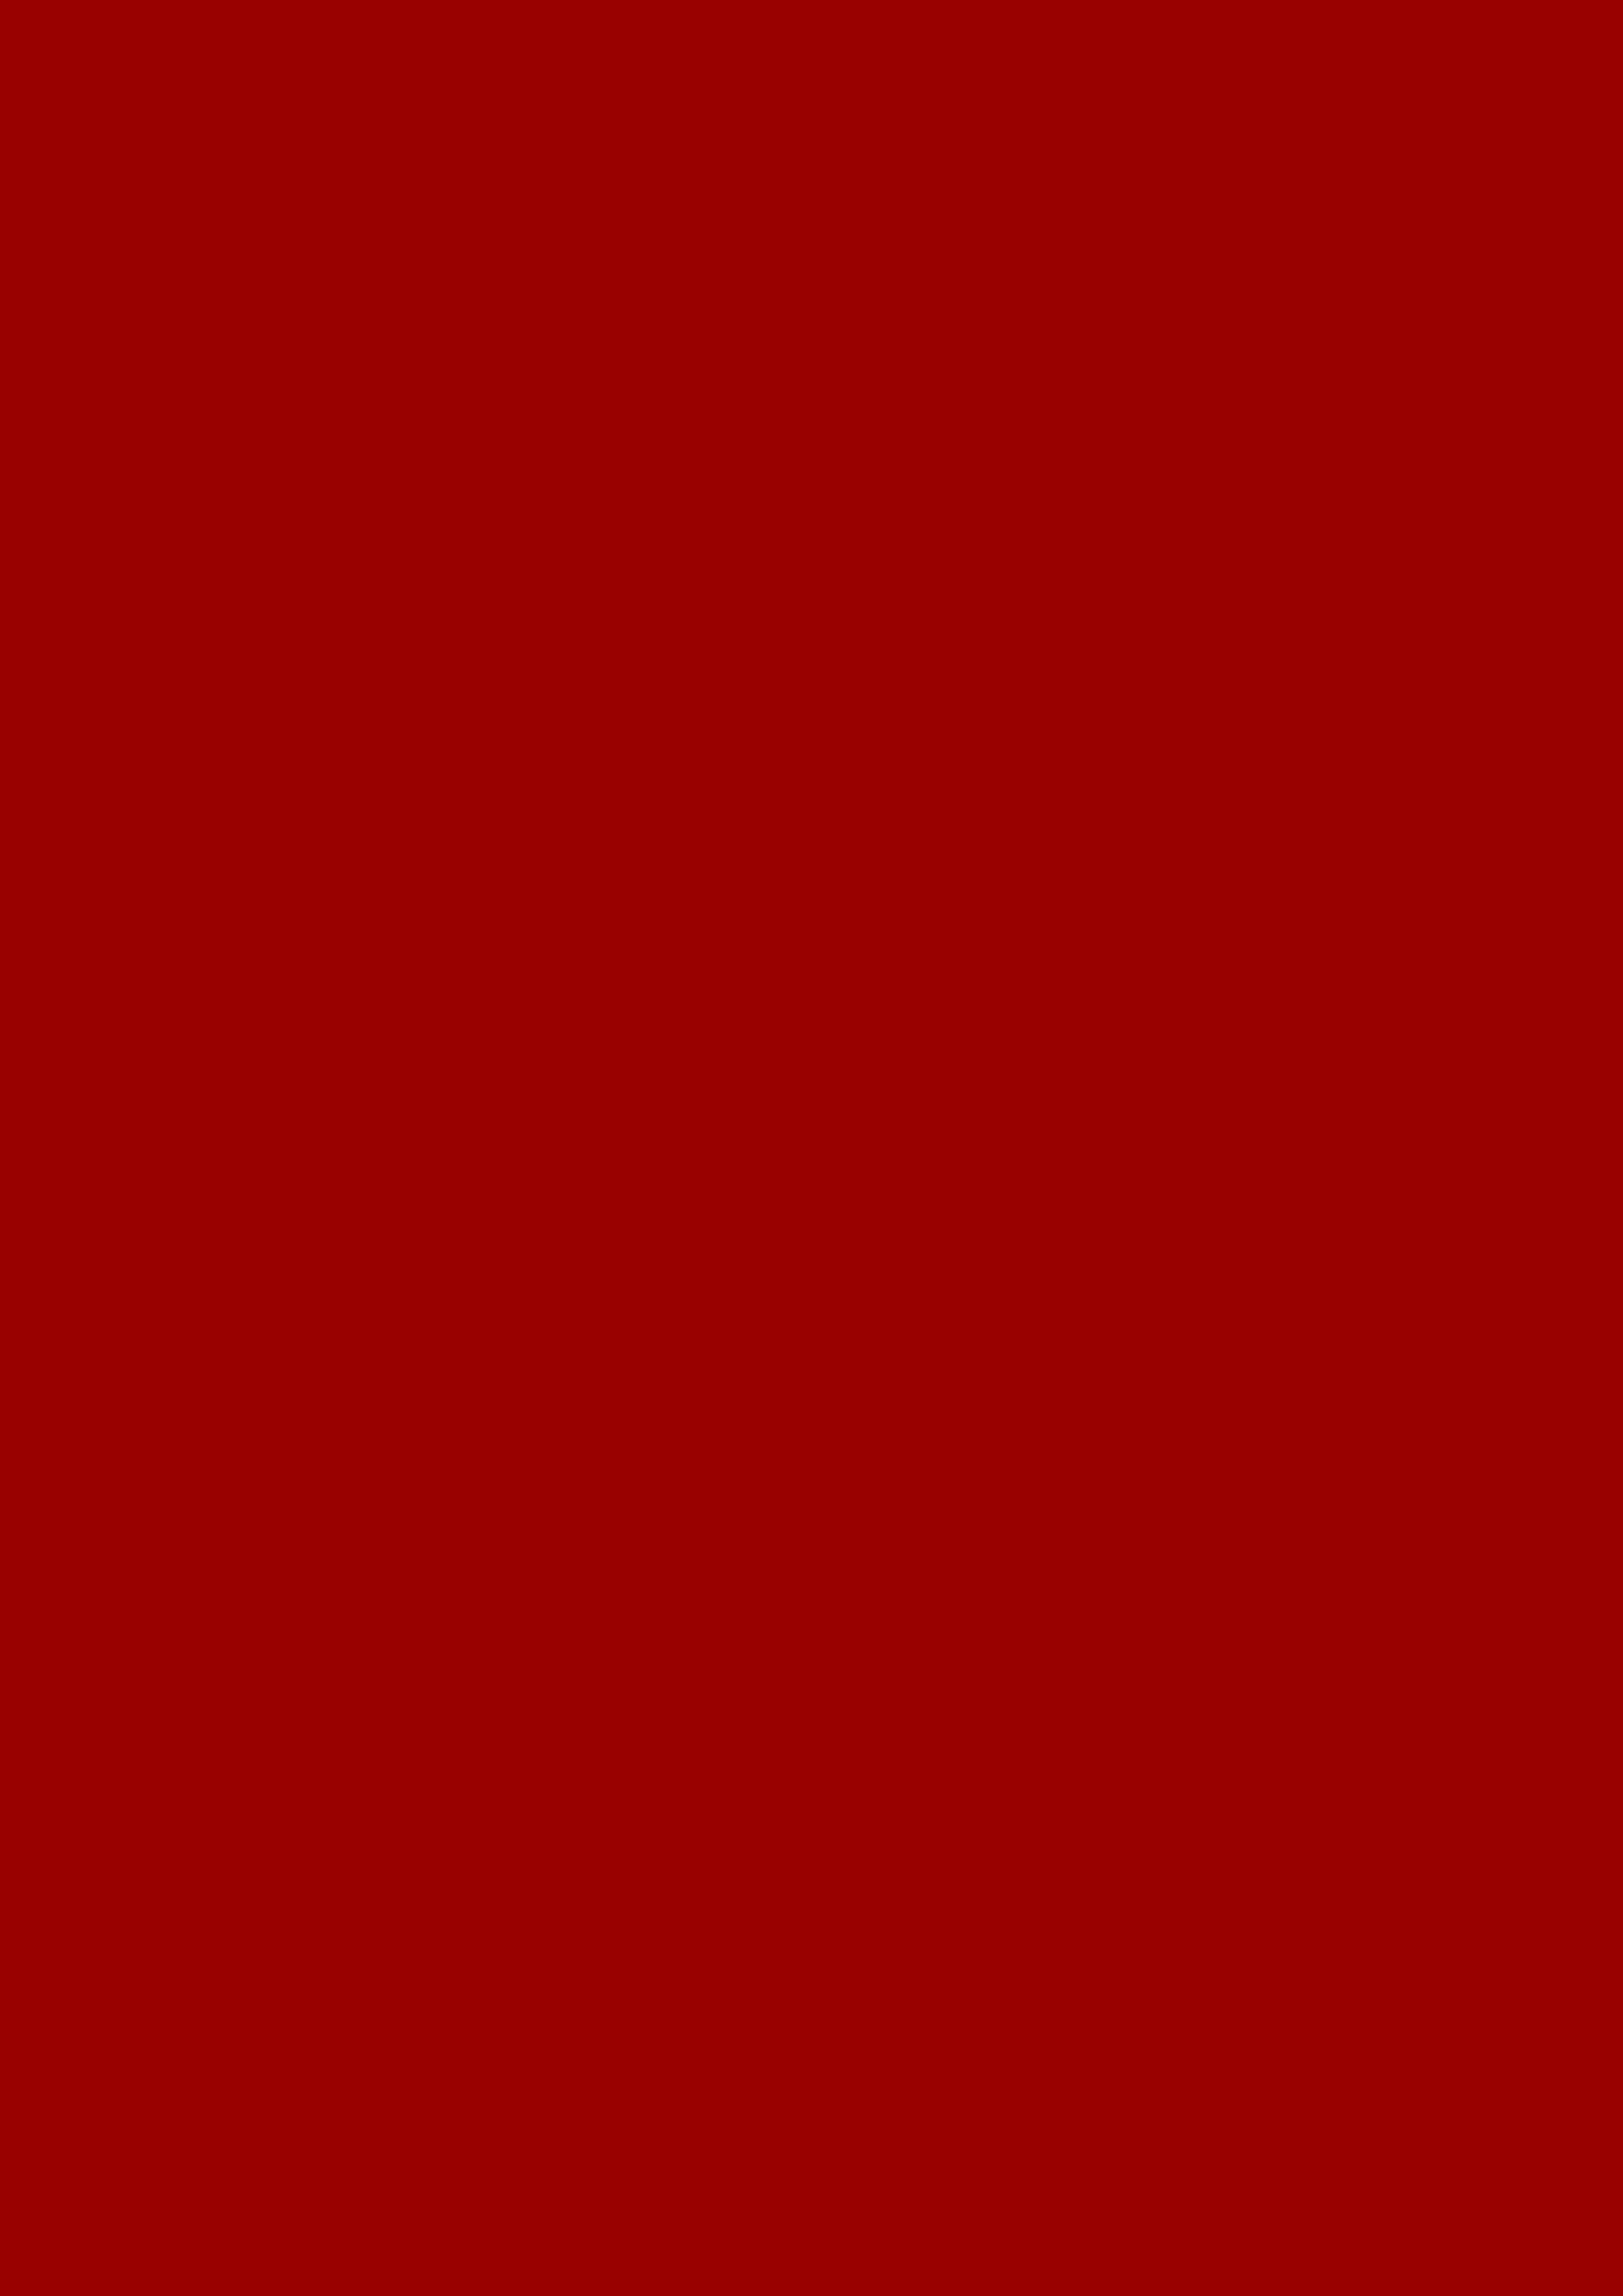 2480x3508 USC Cardinal Solid Color Background